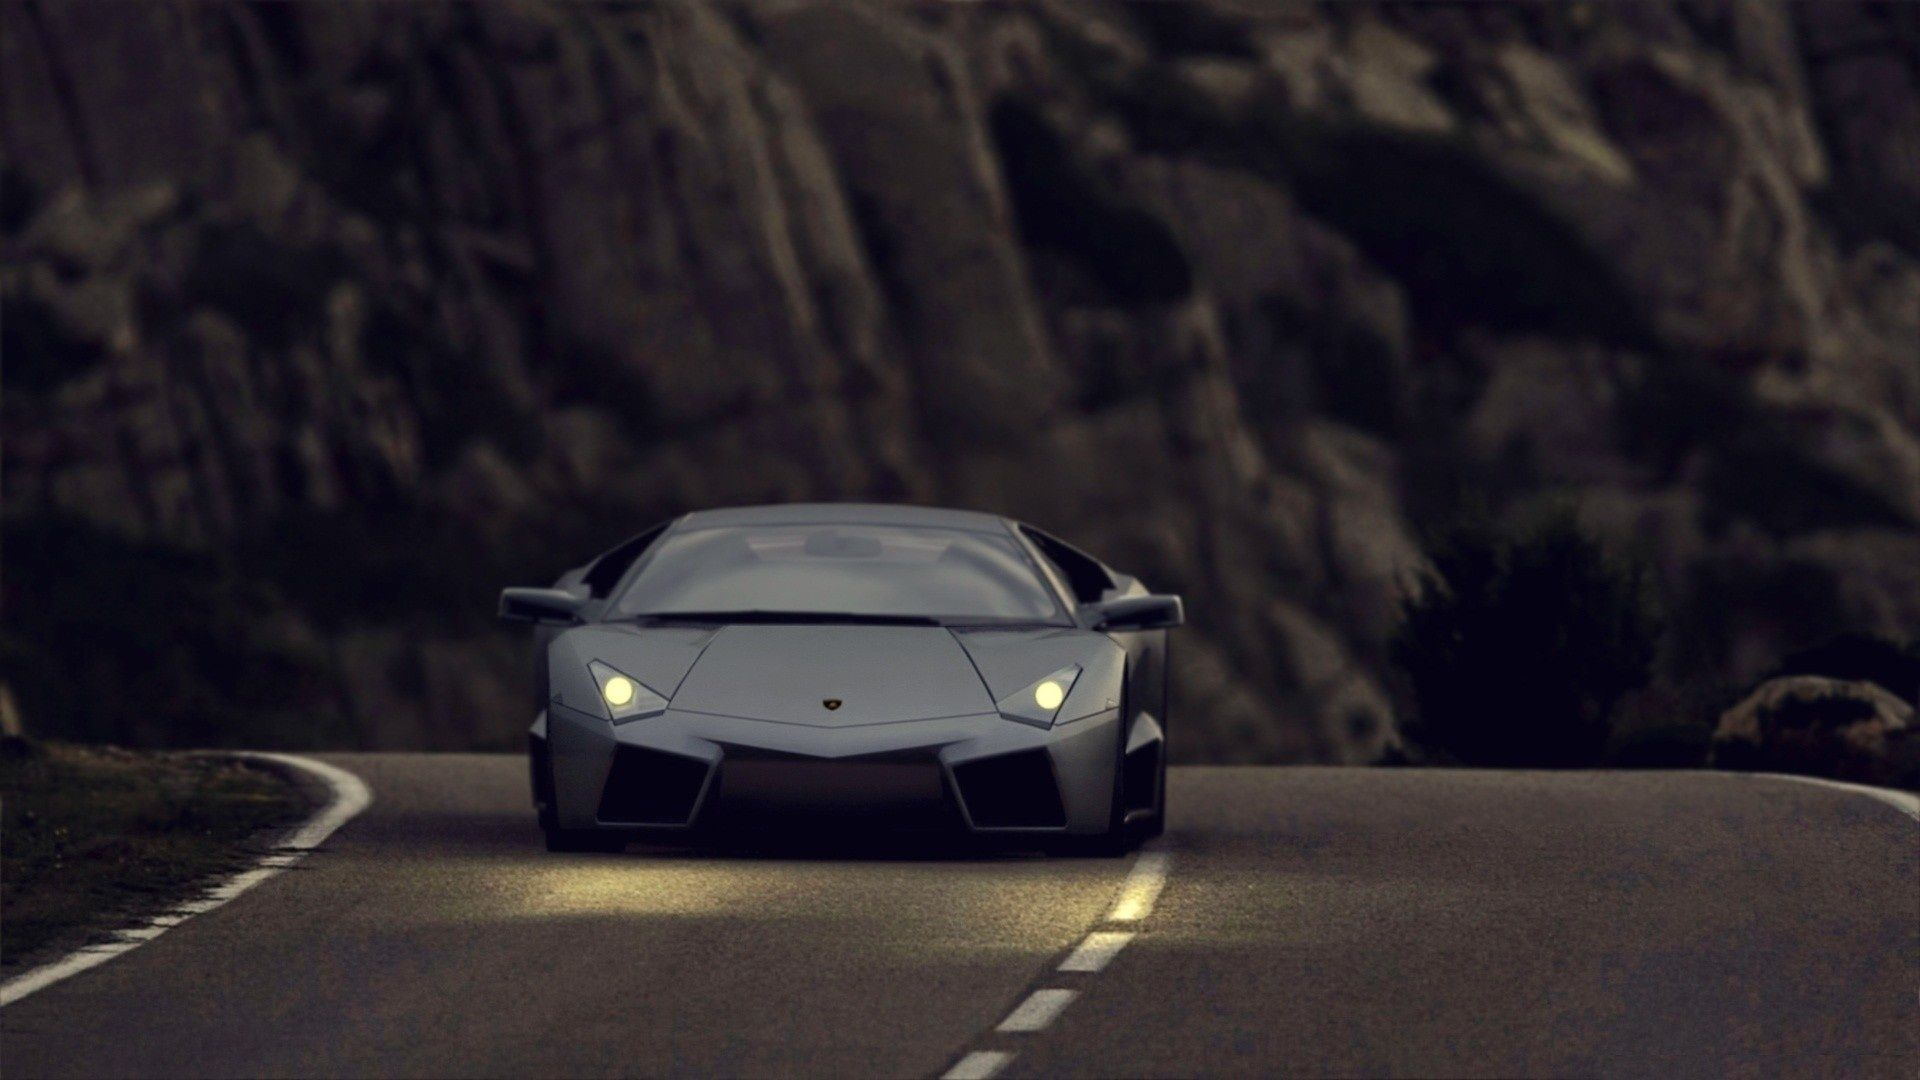 black aesthetic cute lock screen backgrounds are a topic that is being searched for and liked by netizens nowadays. Lock Screen Wallpaper Iphone Black Dark Lamborghini